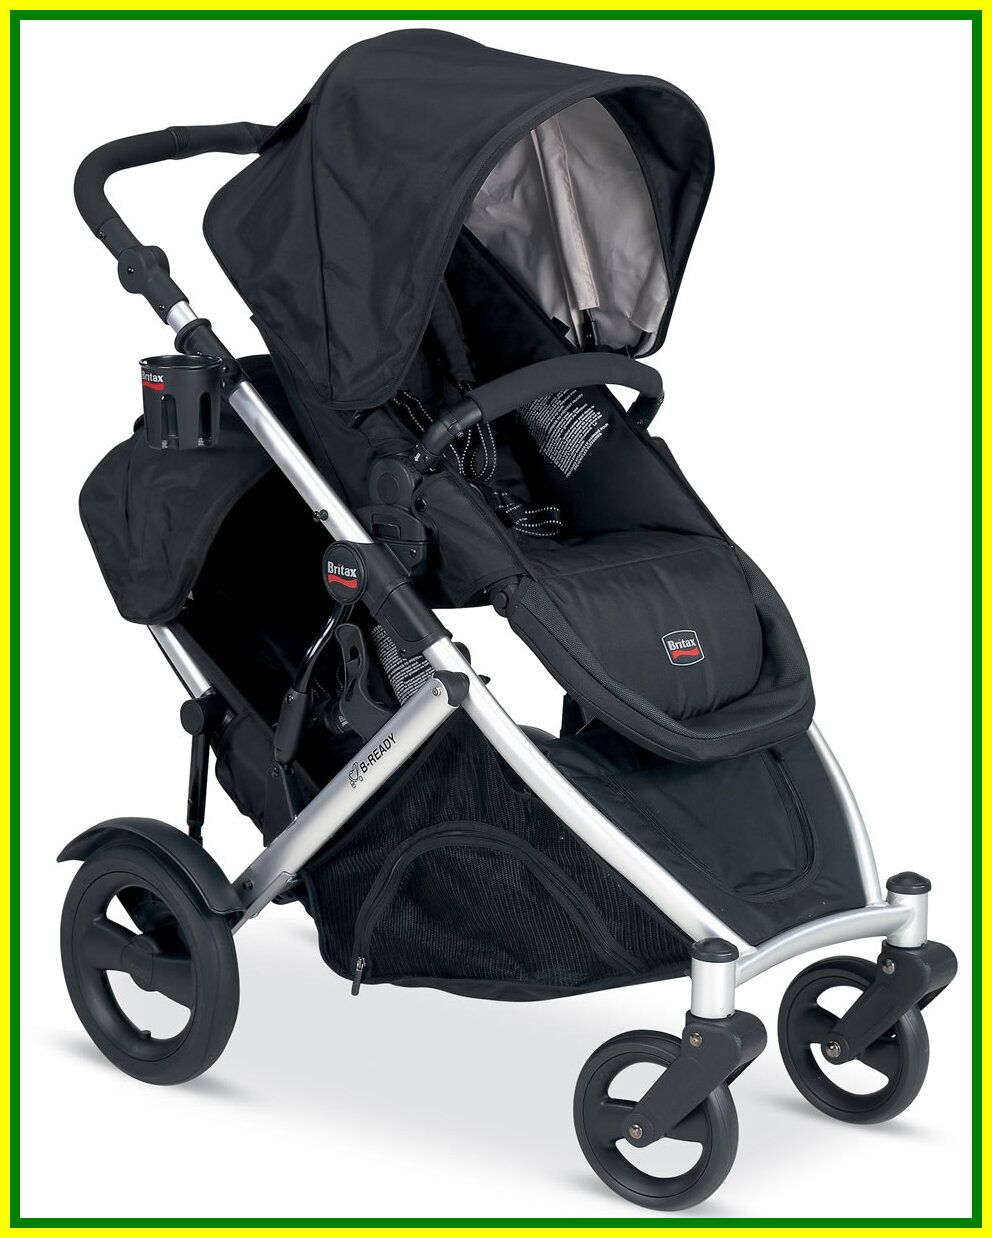 61 reference of stroller board for britax b ready in 2020